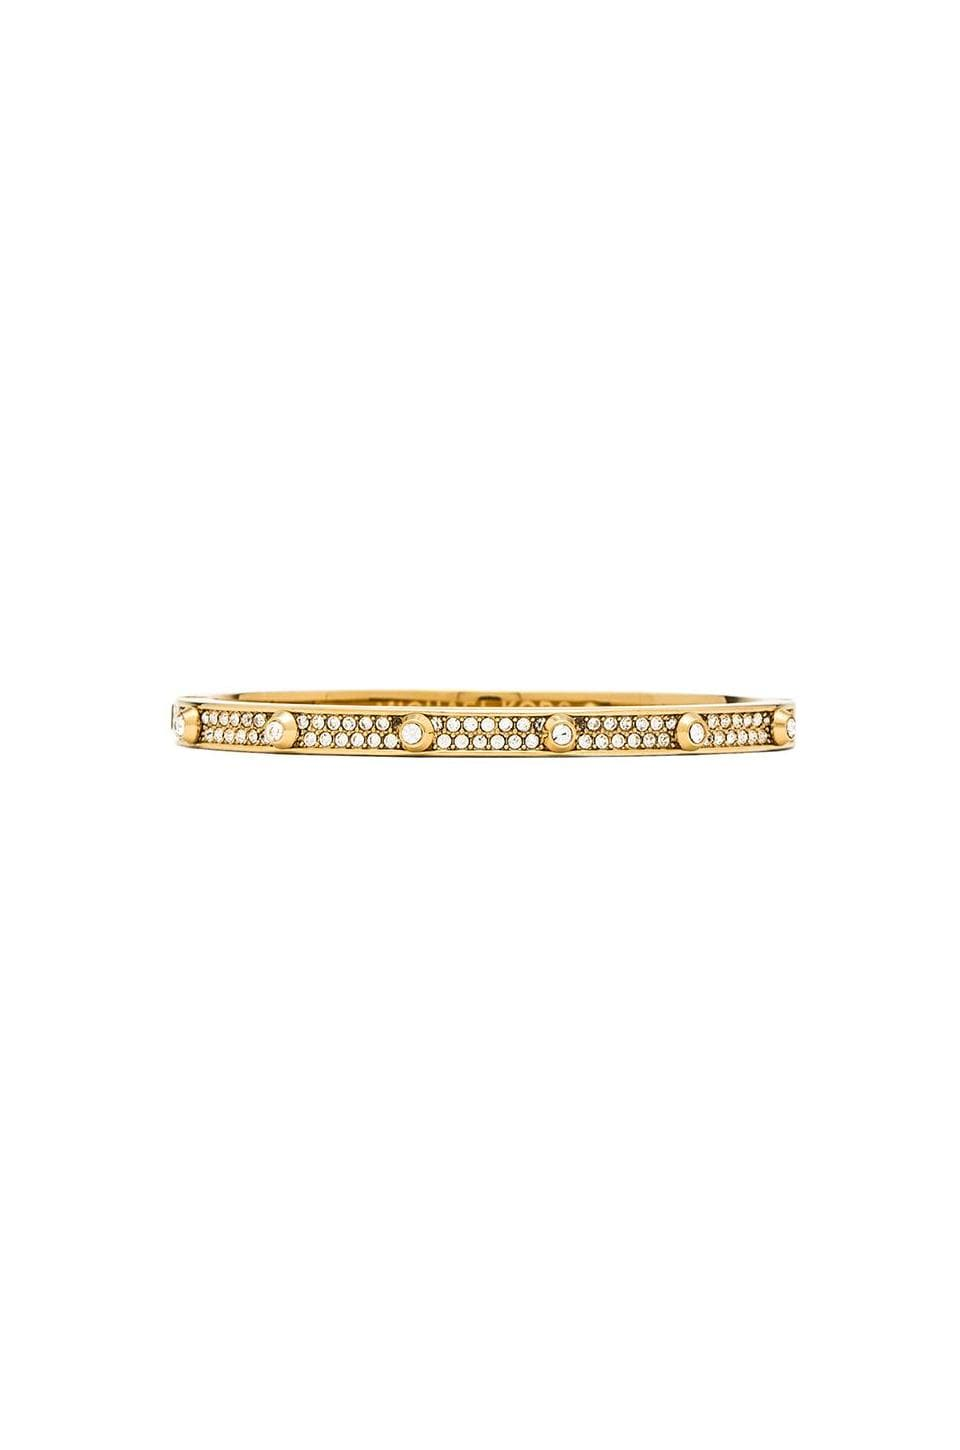 Michael Kors Jeweled Astor Bracelet in Gold